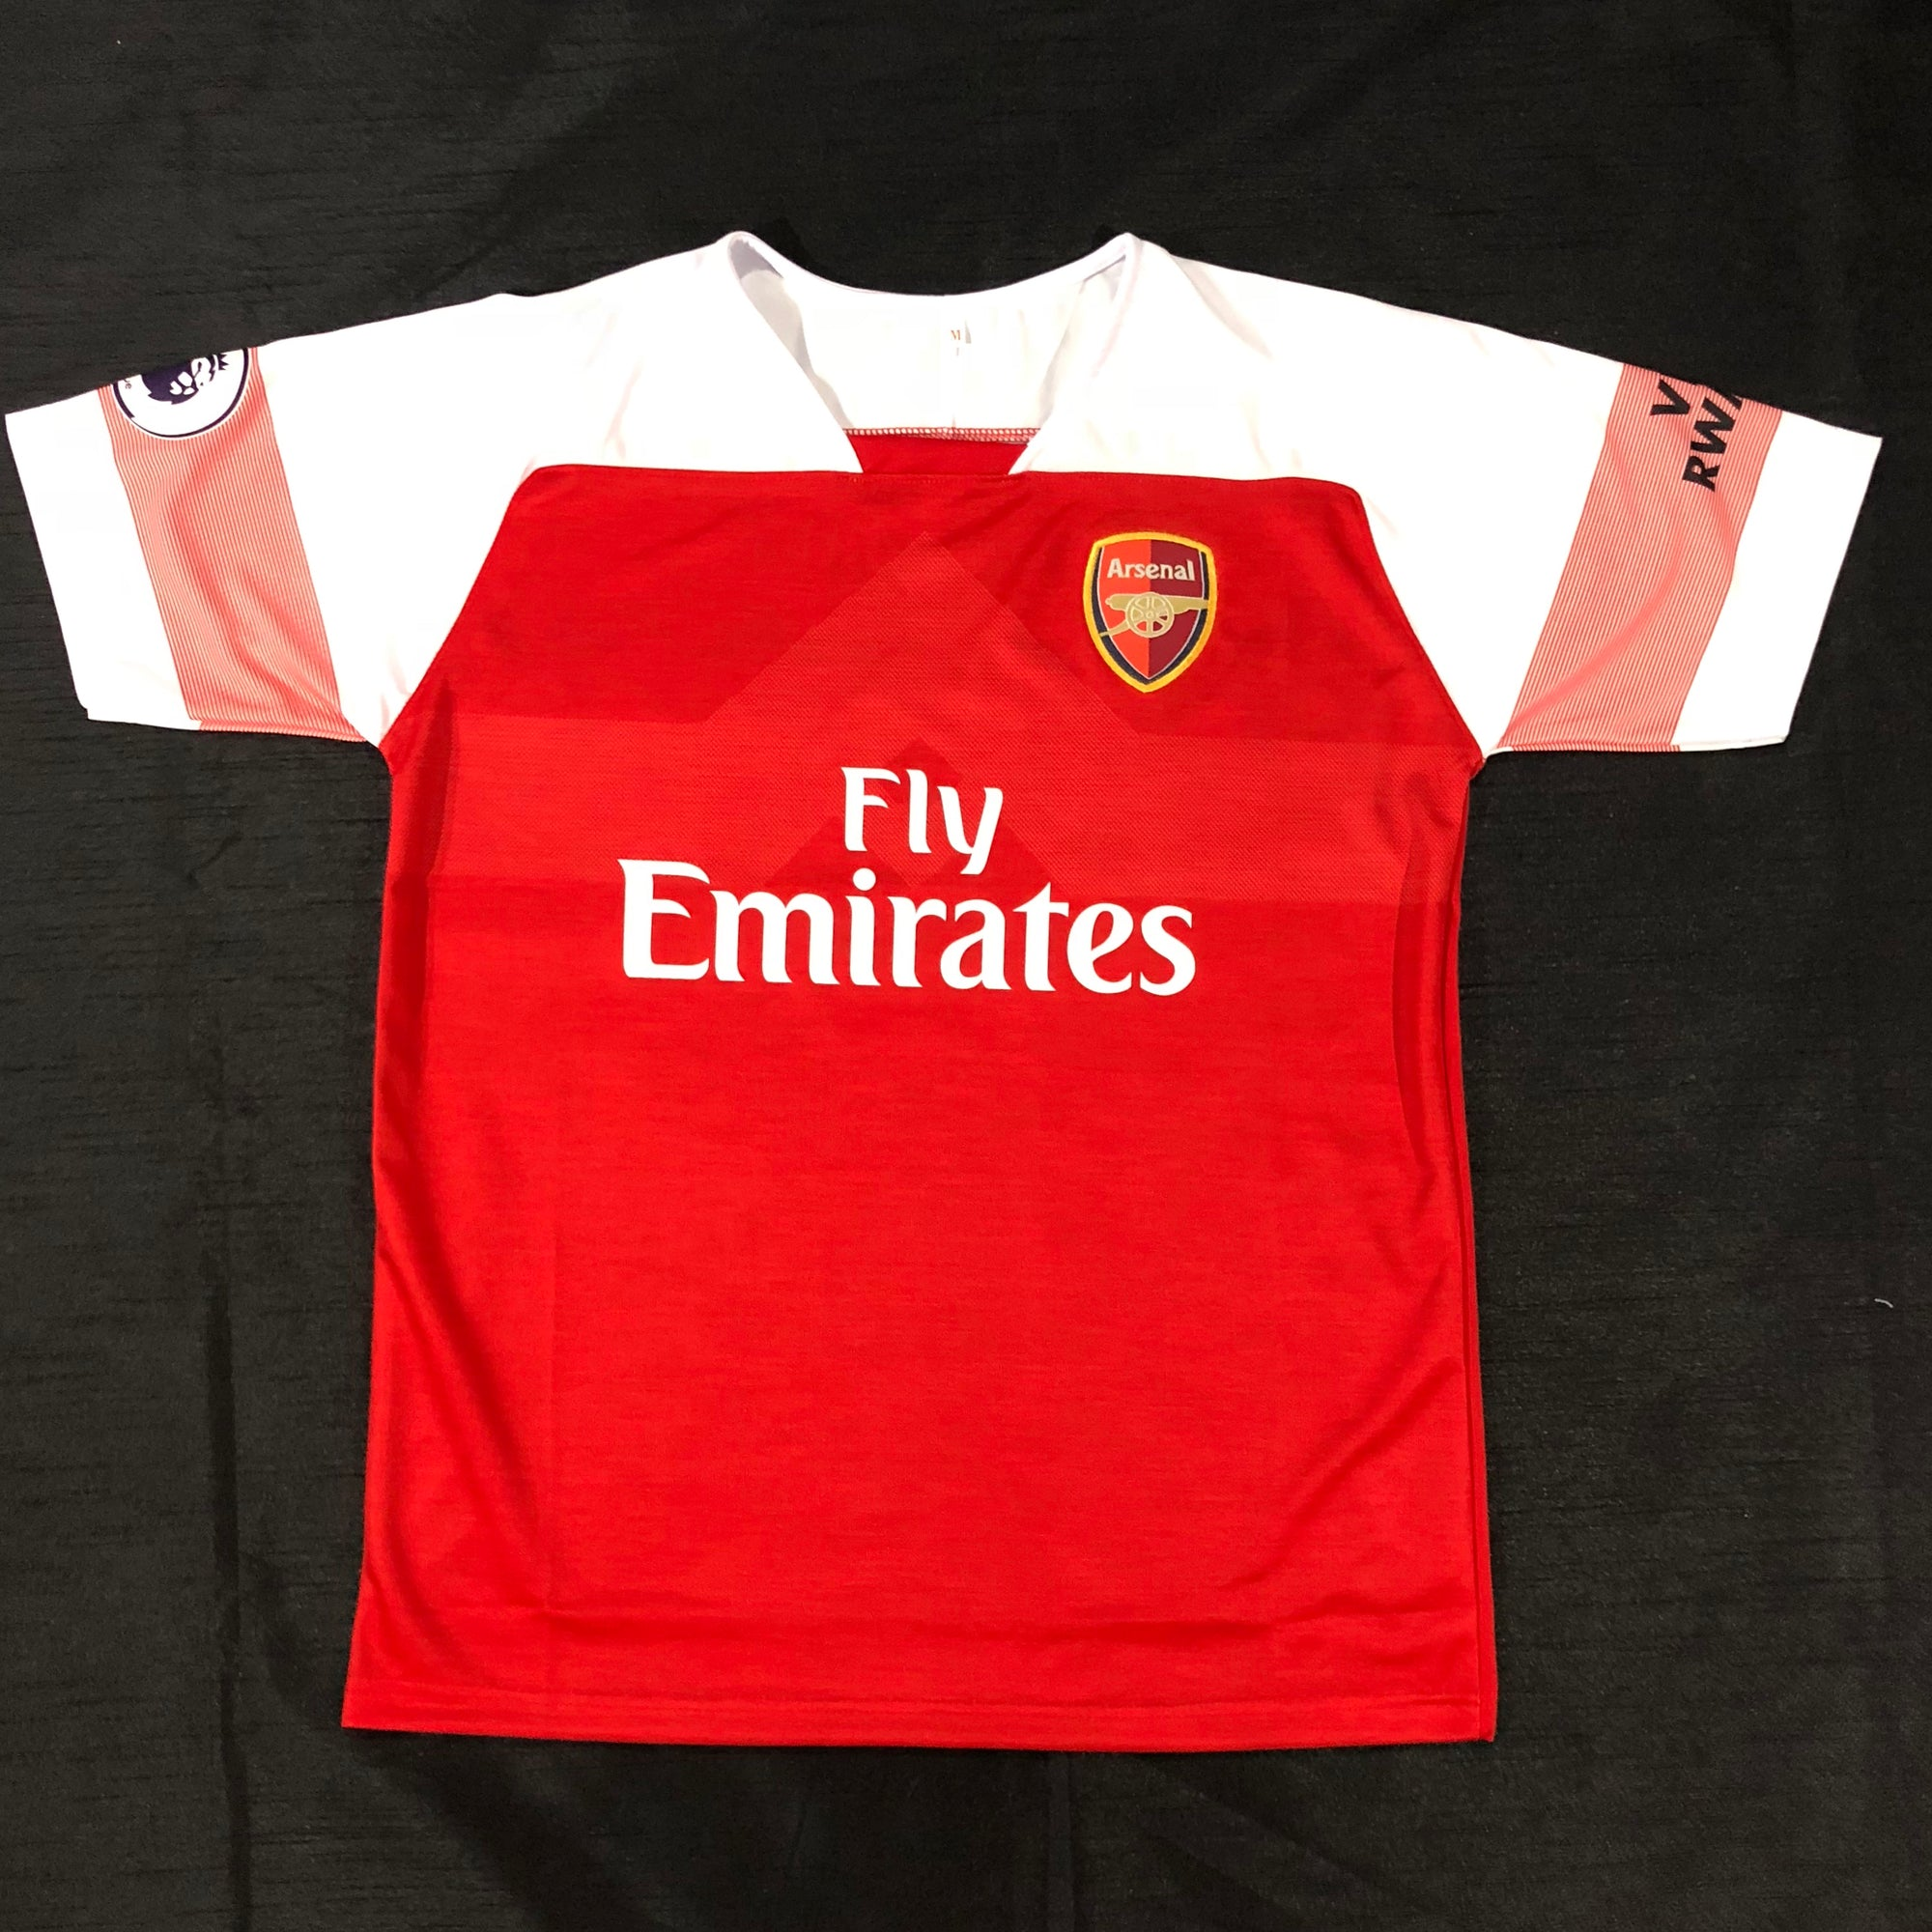 Arsenal 2018/19 Adult Home Shirt ~ Replica Version